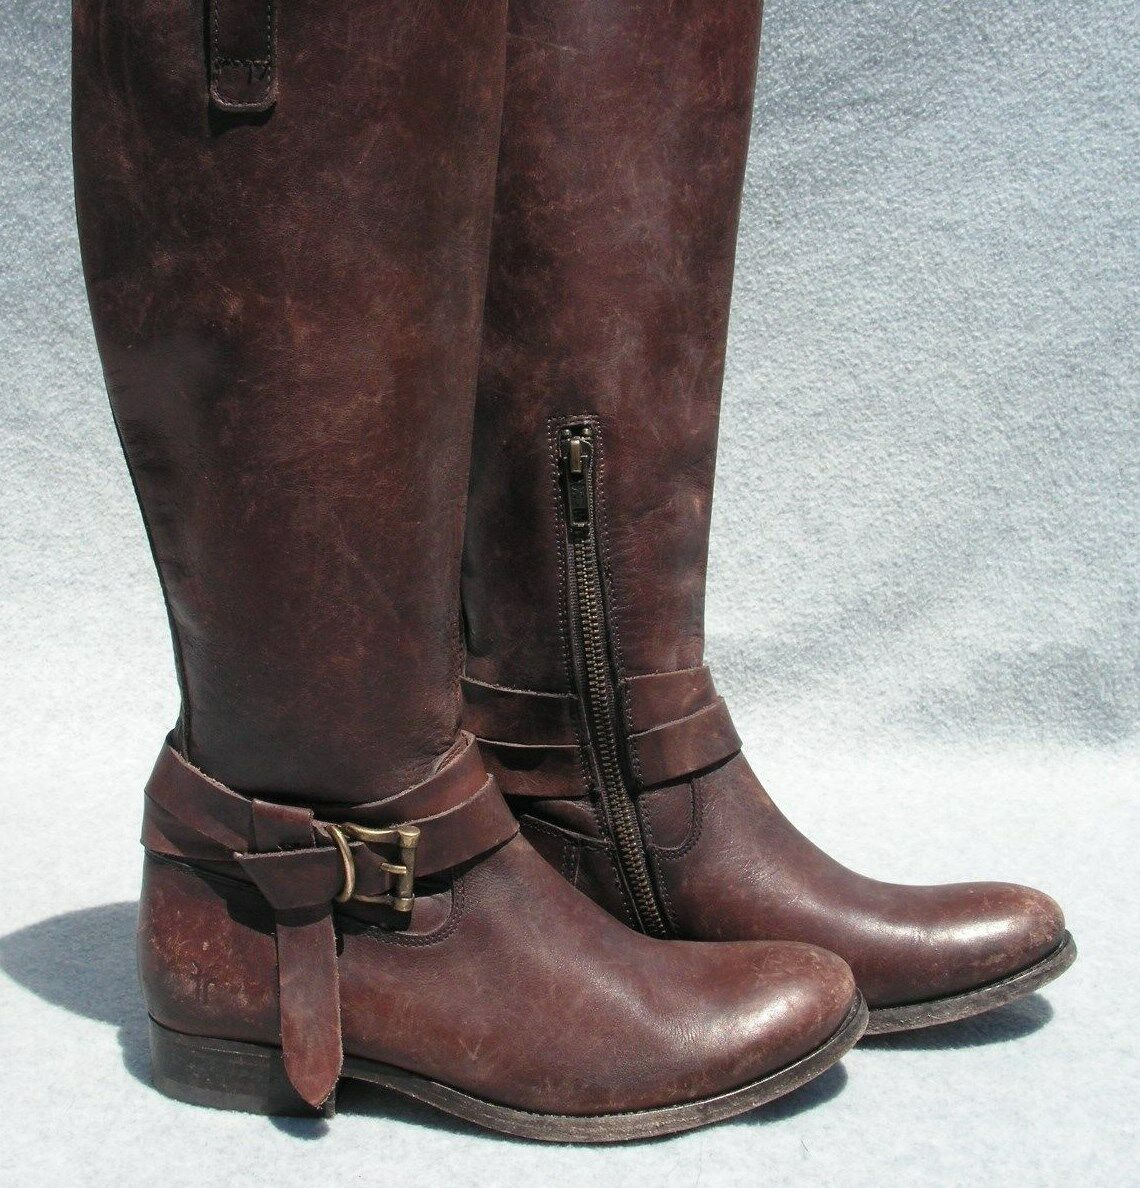 FRYE 'Melissa Knotted' Tall Boot Size 7 Brown  MSRP   398